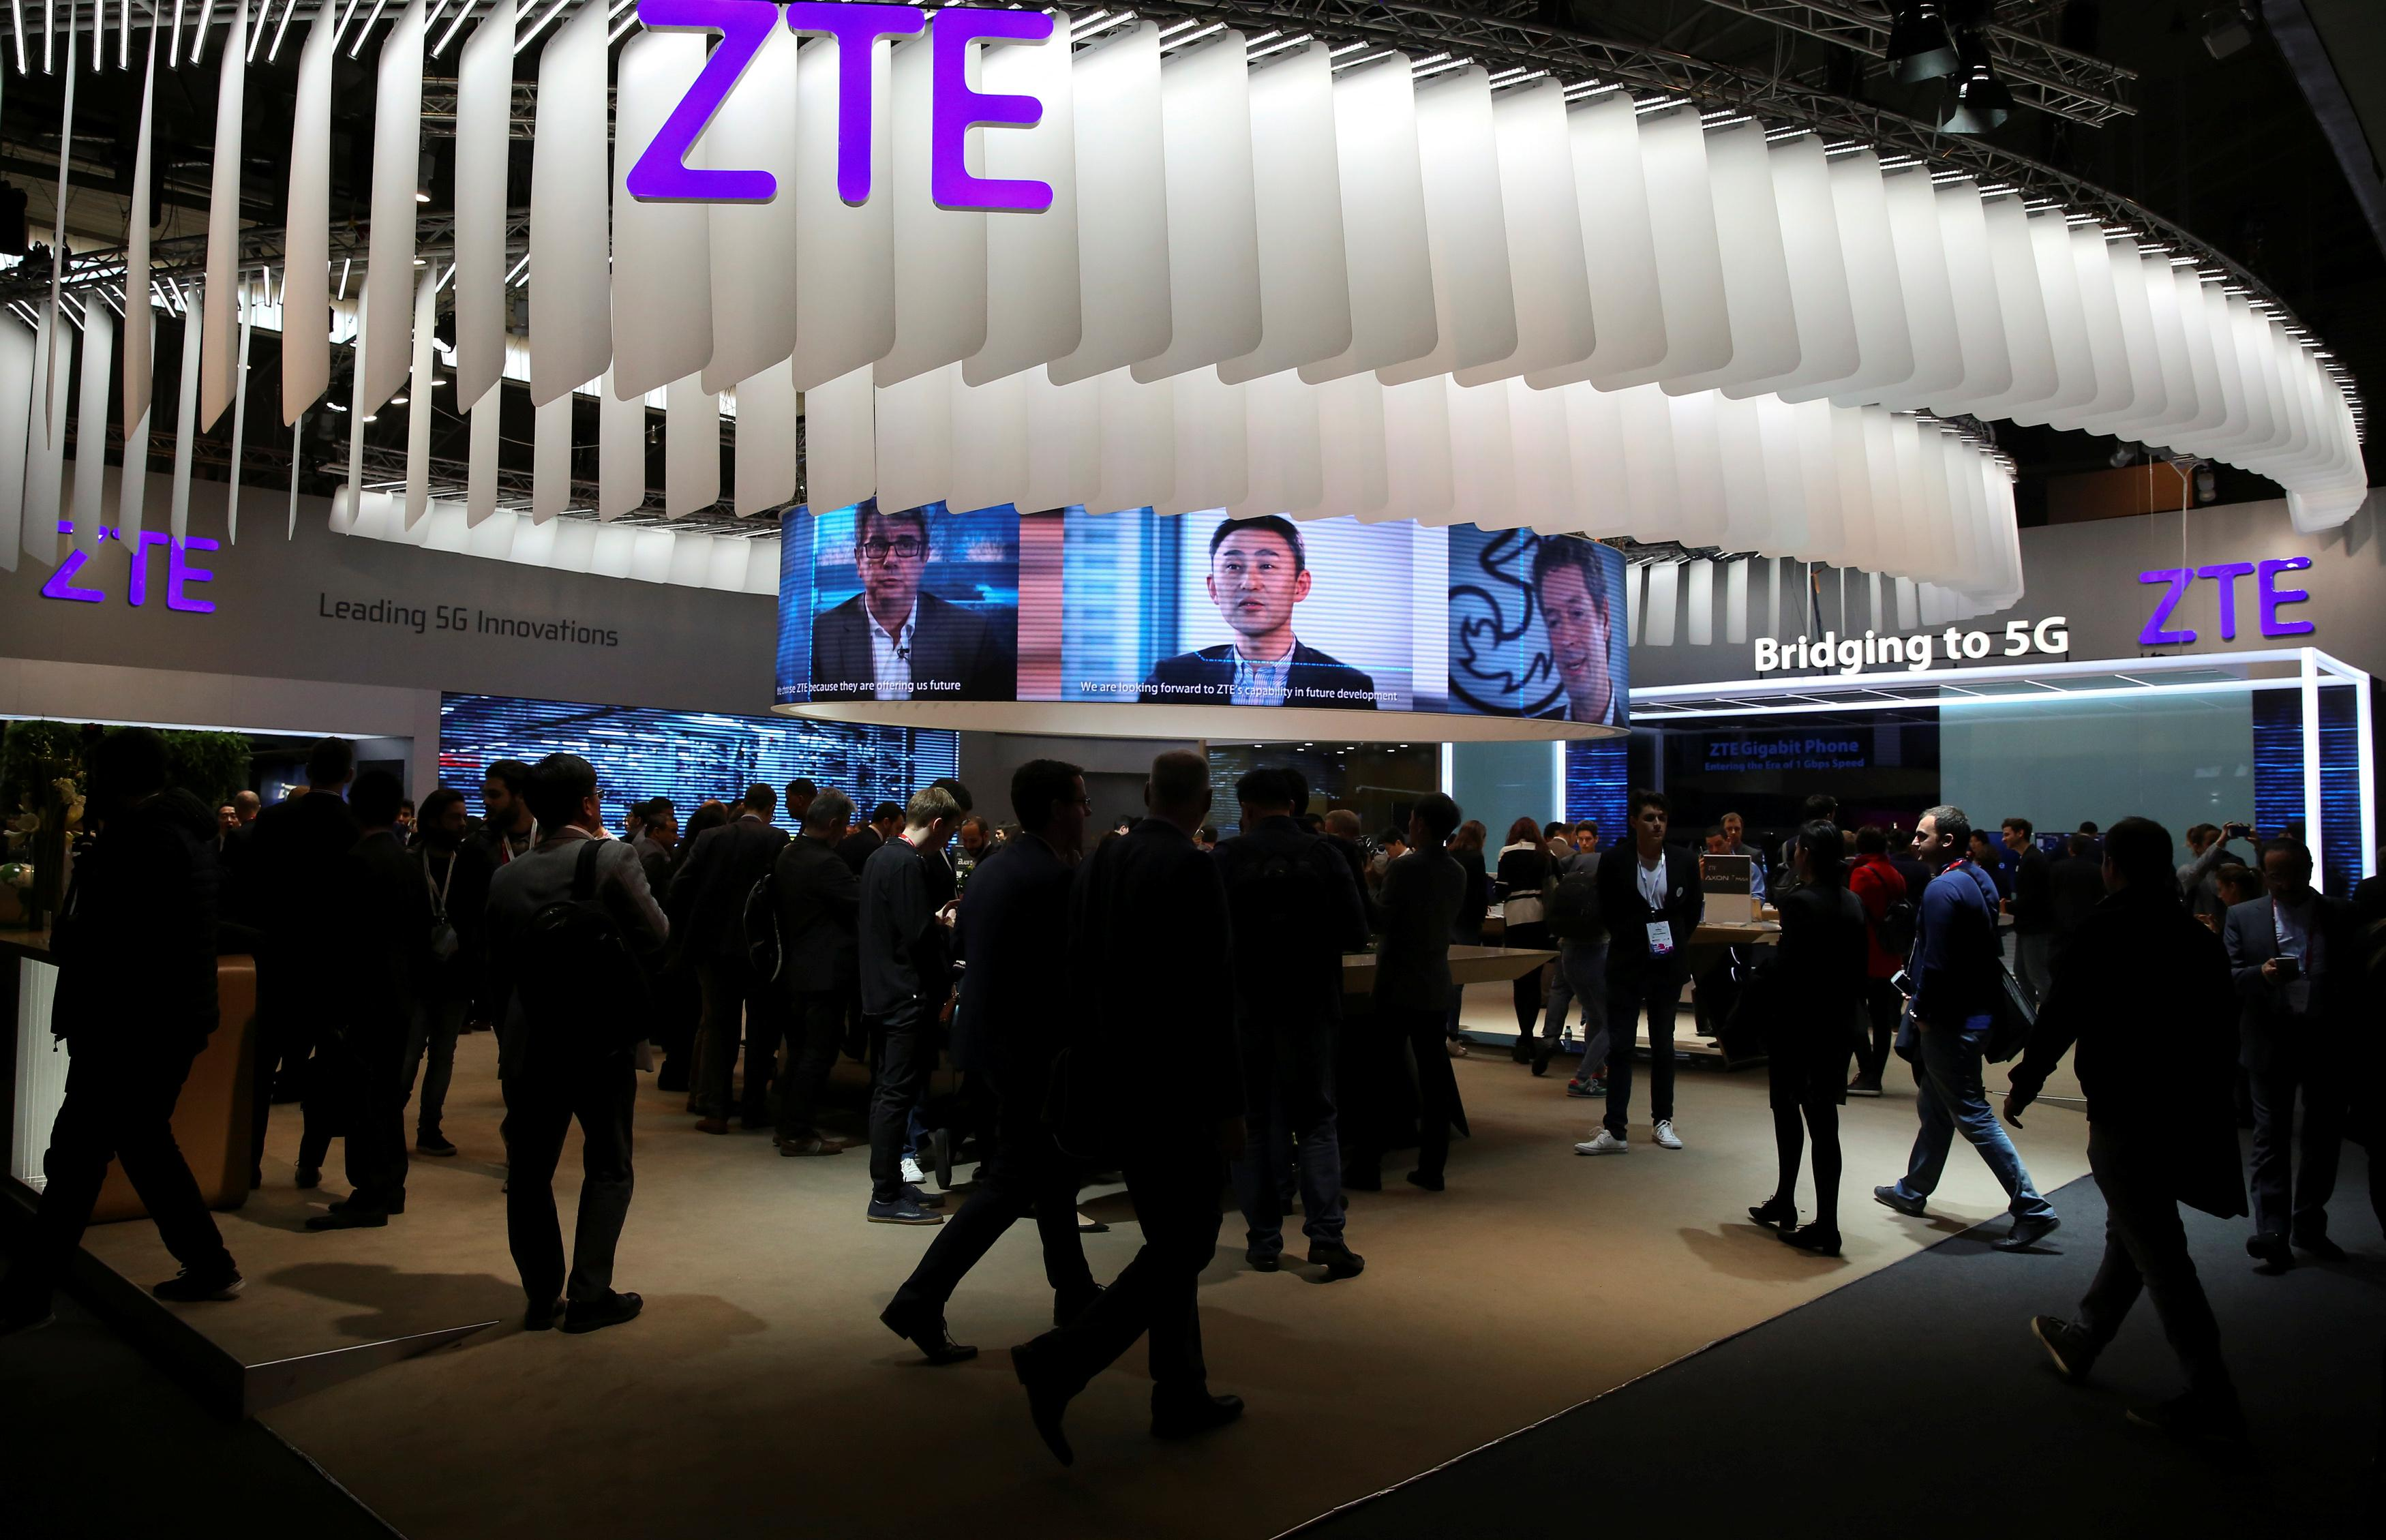 Things are looking bleak as ZTE ceases main business operations